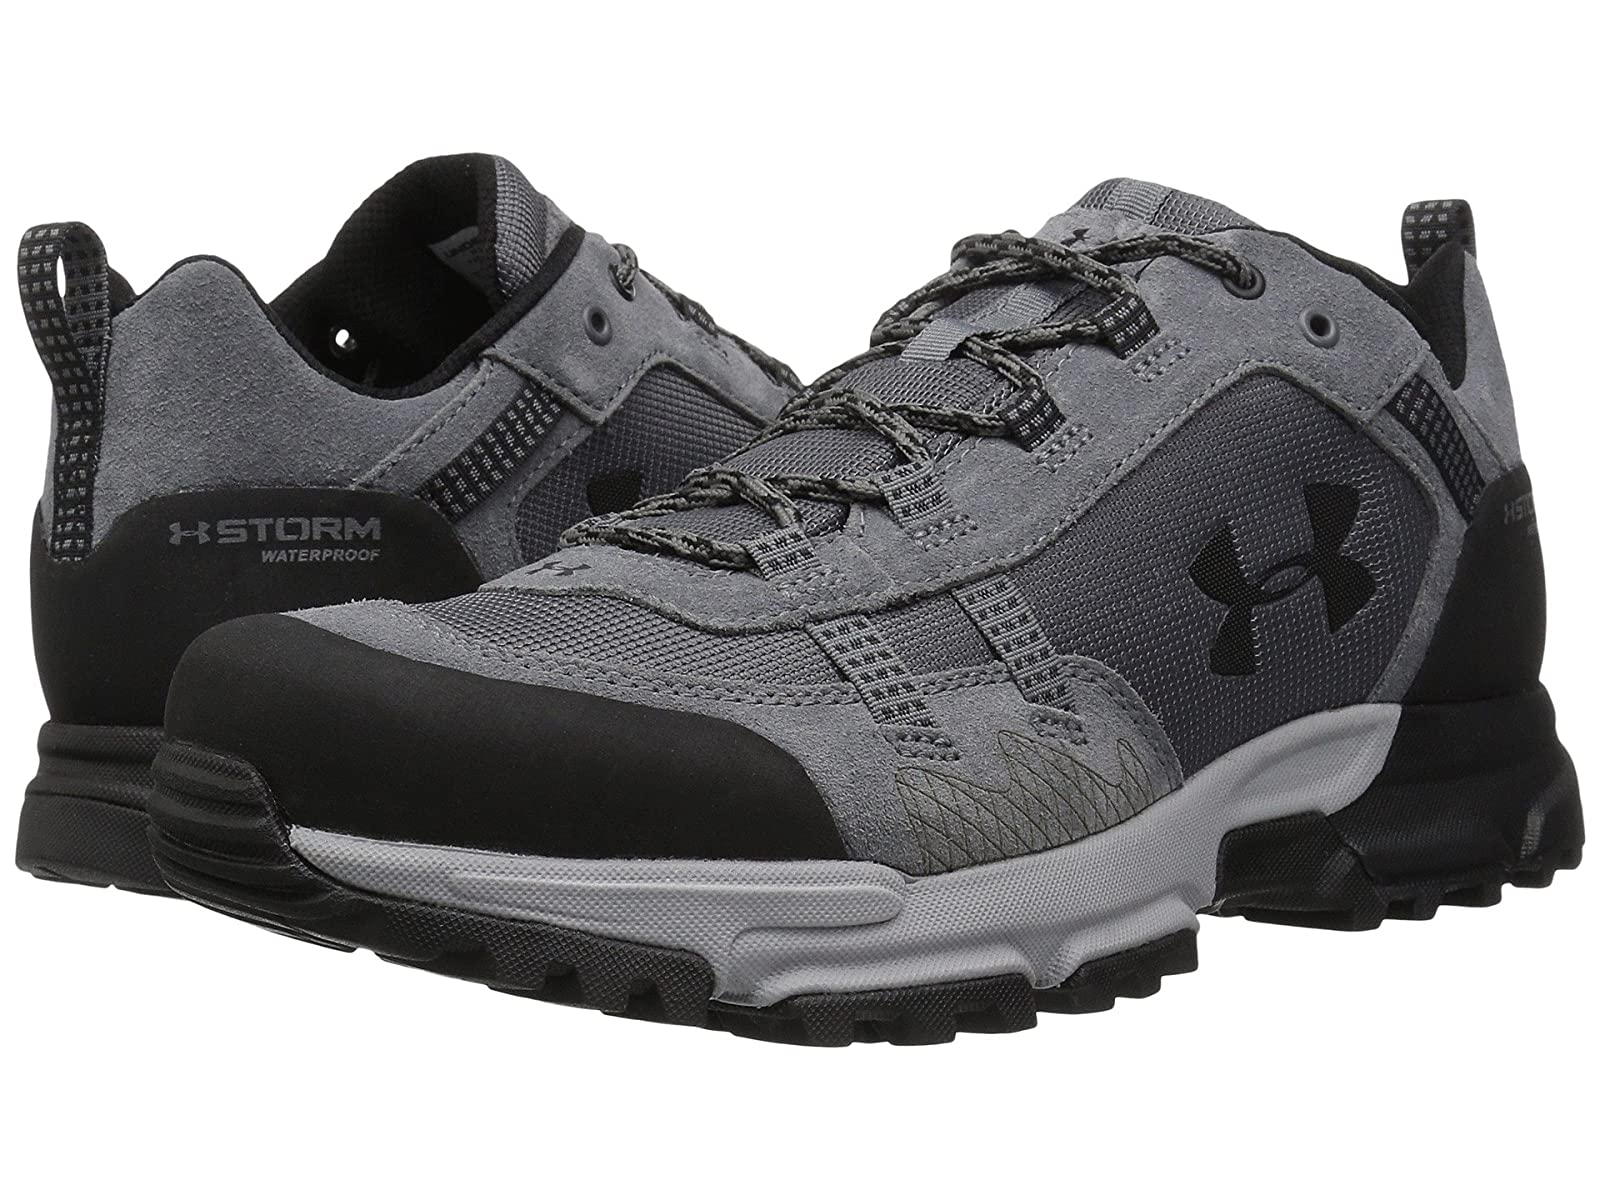 Under Armour UA Post Canyon Low WaterproofCheap and distinctive eye-catching shoes